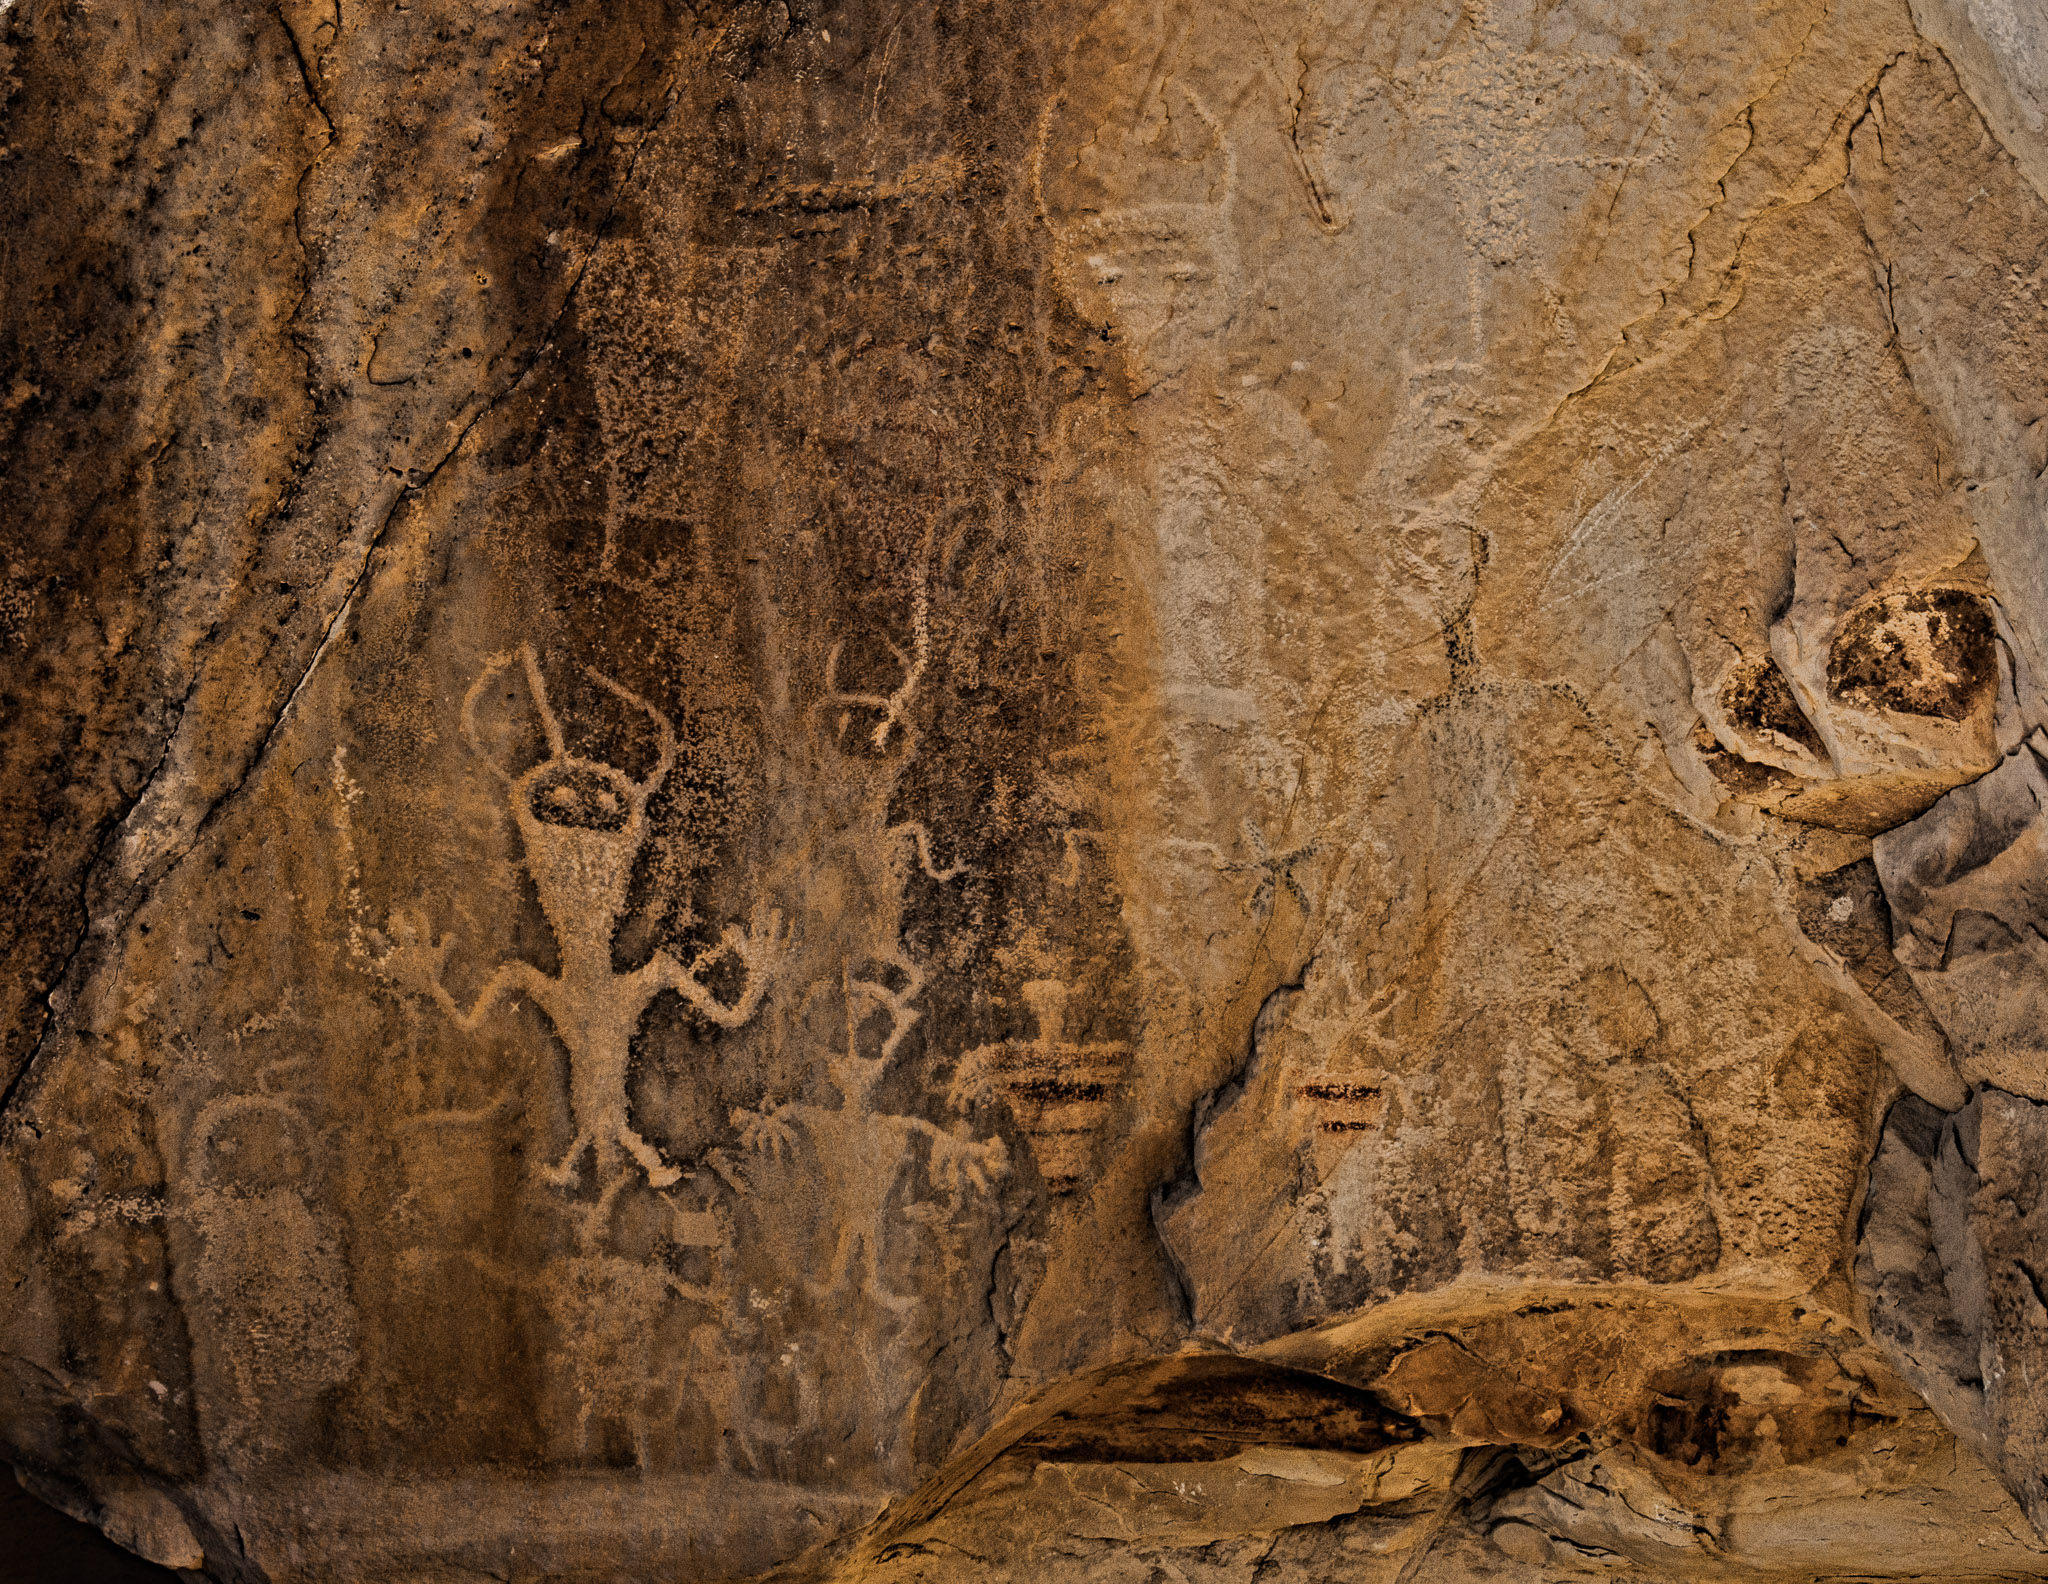 """Petroglyphs in """"Swelter Shelter"""" are thought to be from the Fremont Culture. Remnants of a red color can be discerned on the torsos of several of the figures. Swelter Shelter is located along Cub Creek Road in Dinosaur National Monument near Vernal Utah."""